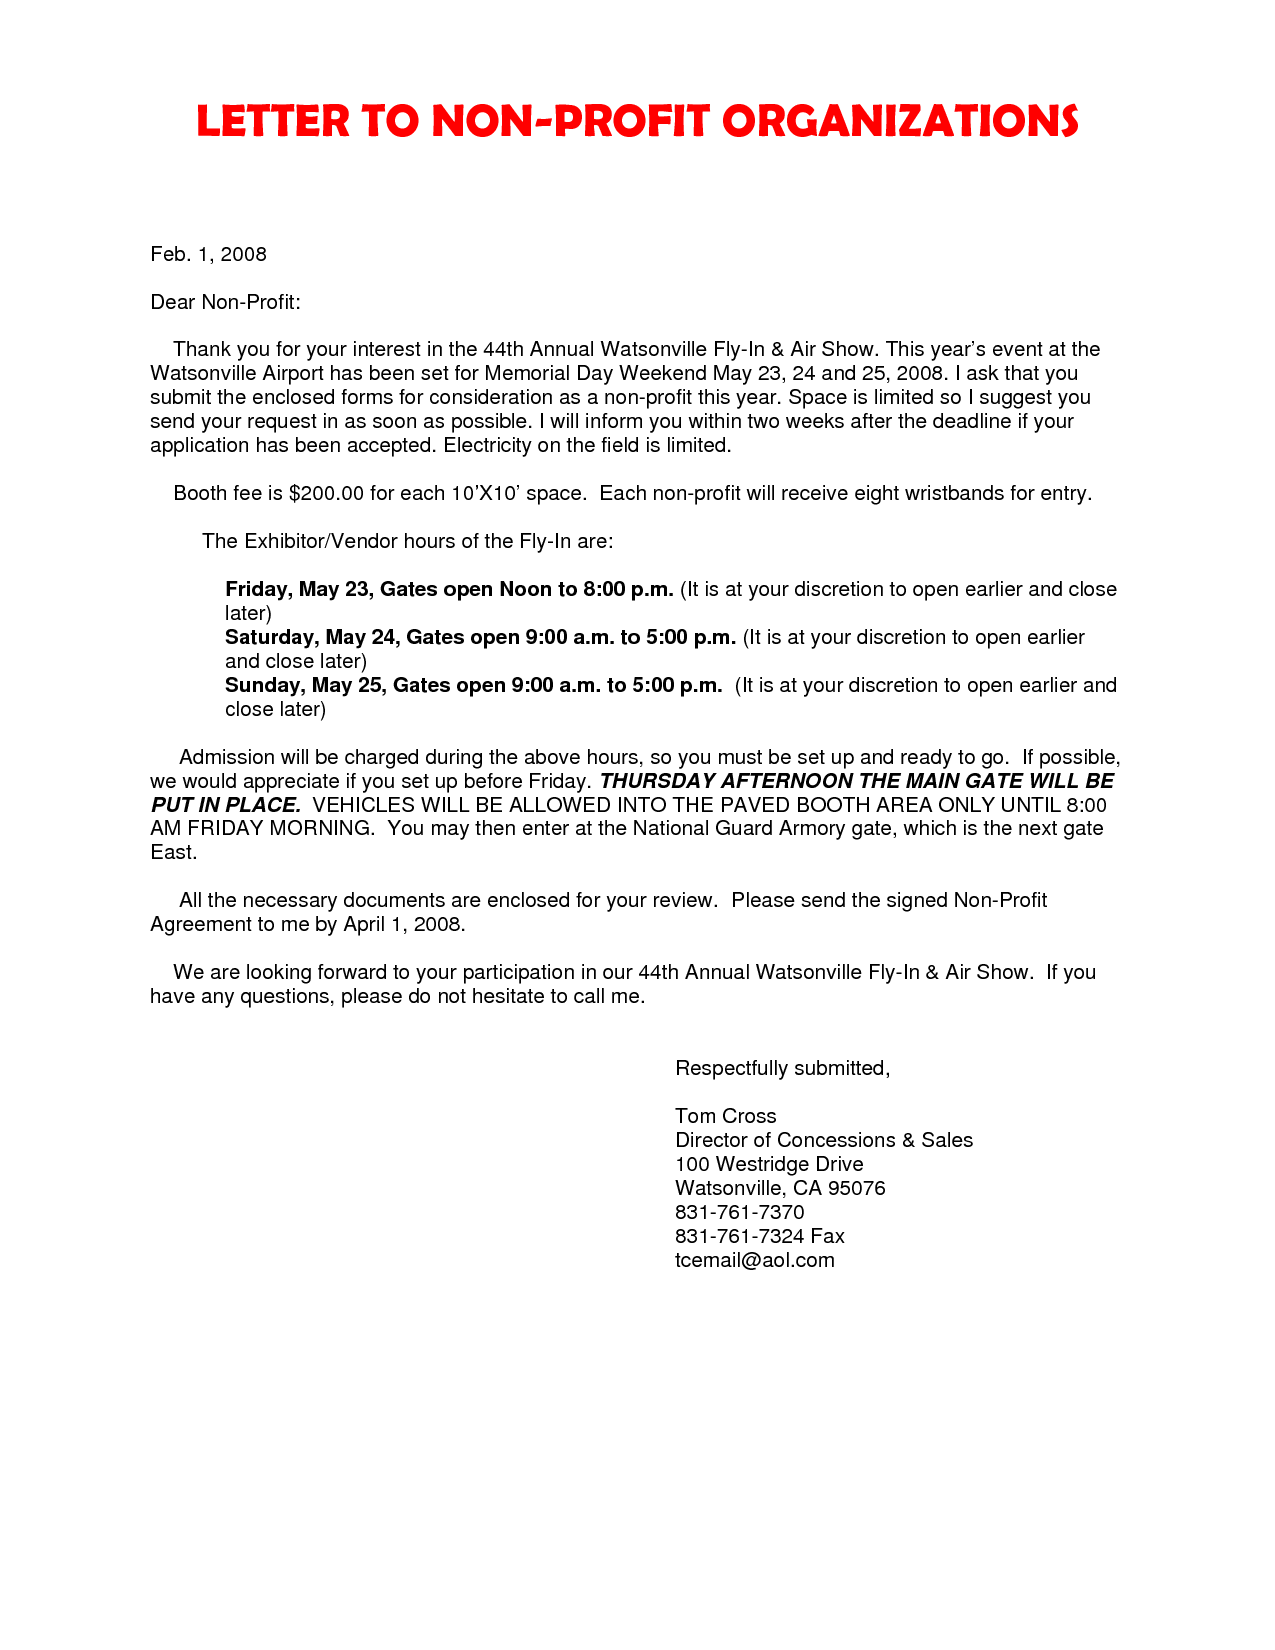 Motivation Letter for Non Profit Organization